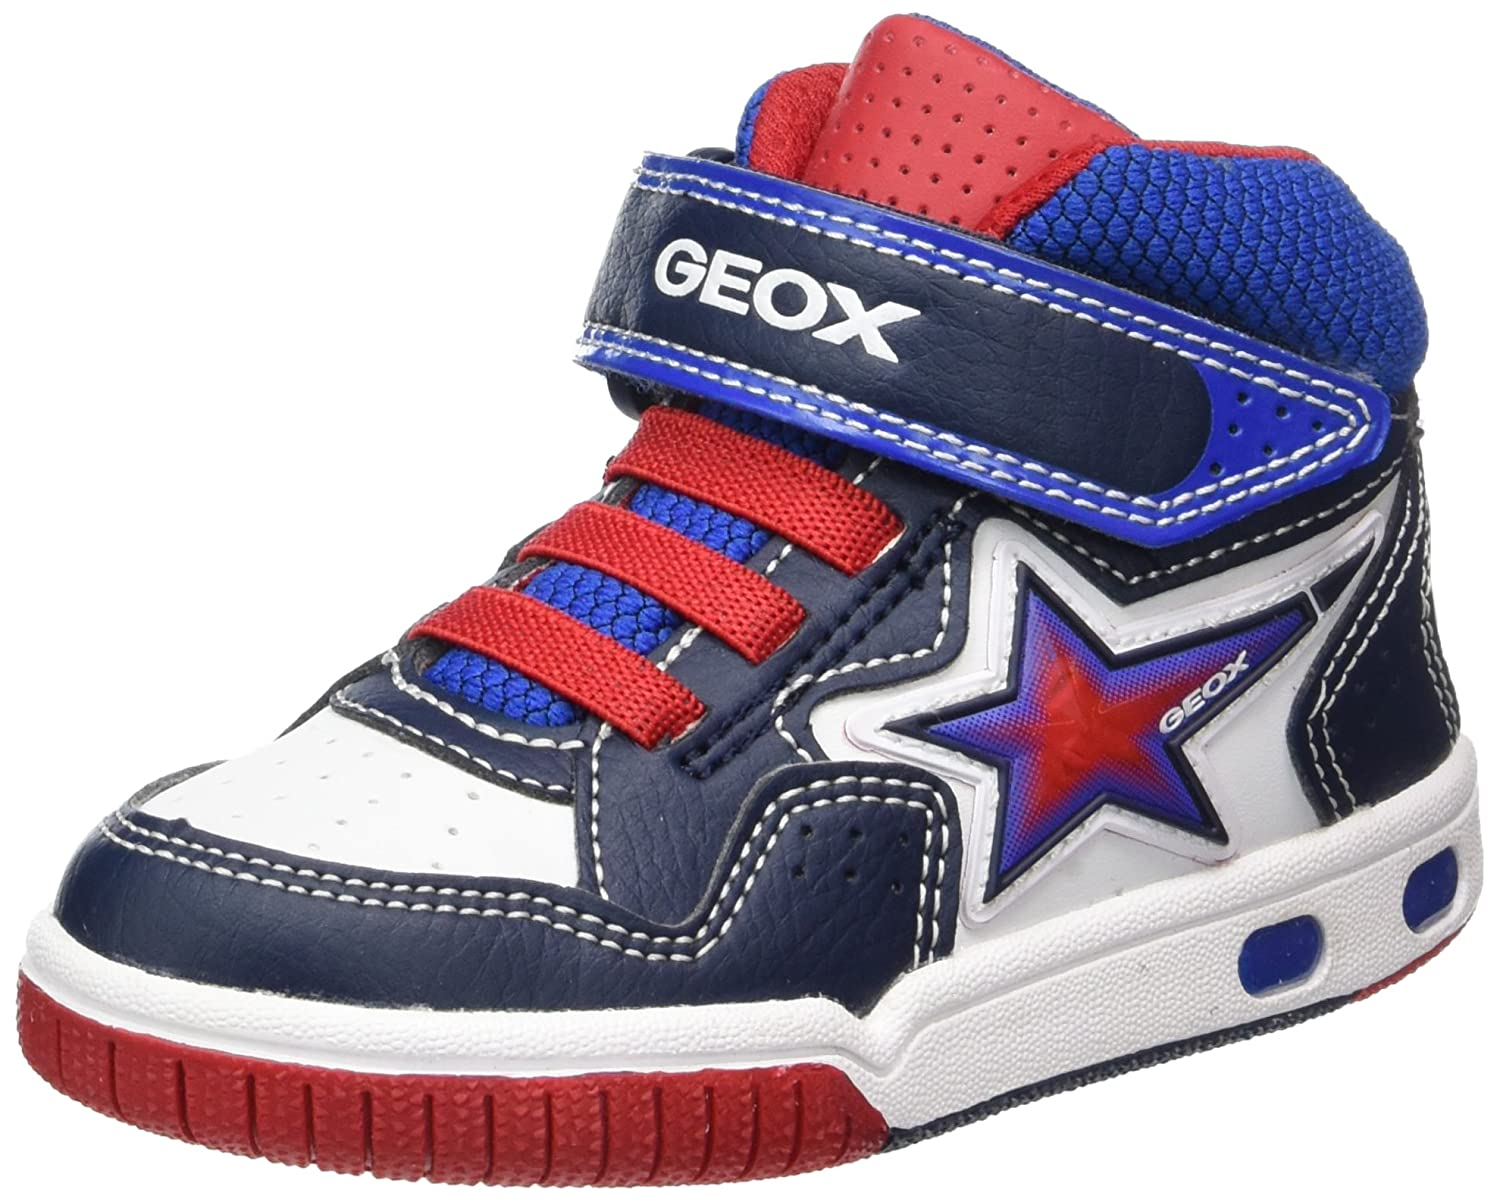 half off great quality fresh styles Geox Boys' Jr Gregg a Hi-Top Trainers, Blue